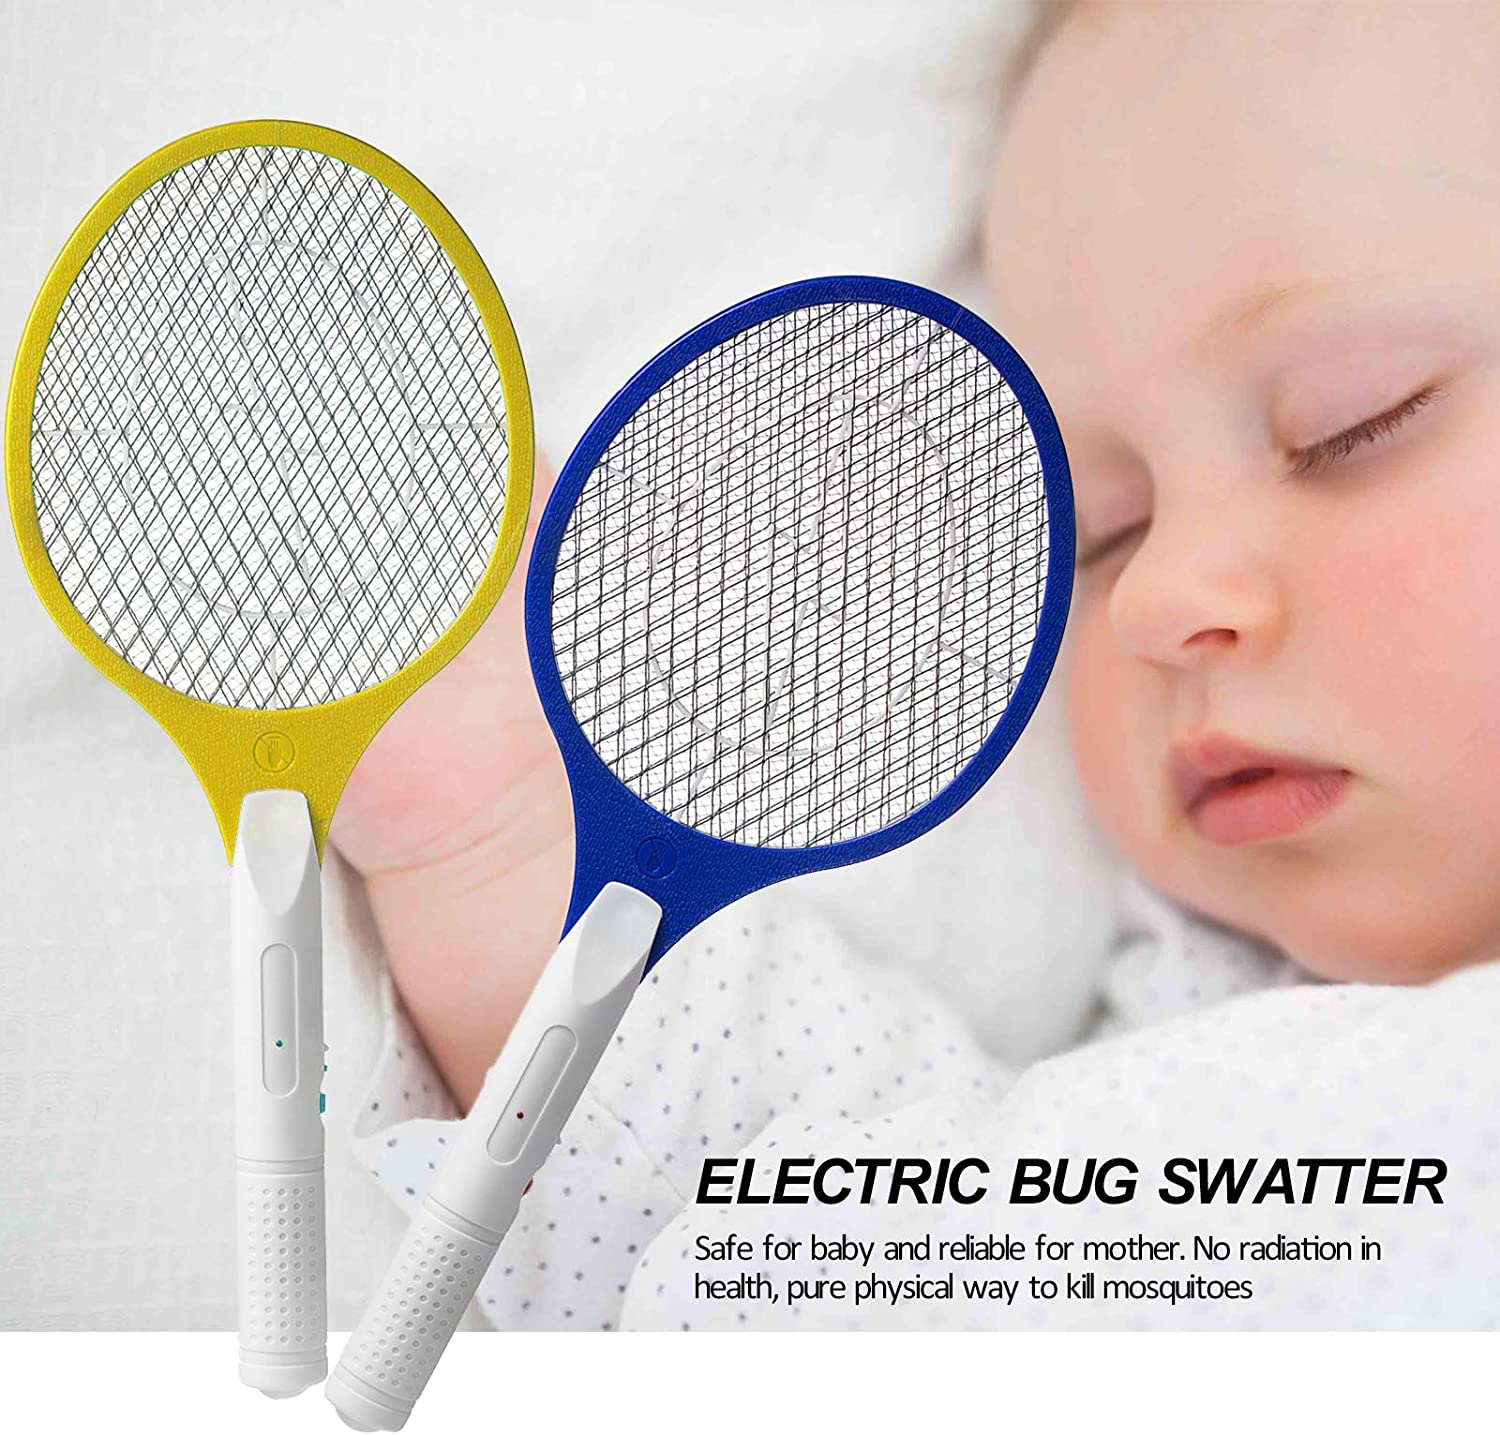 Micnaron Electric Fly Swatter 2 Pack, Portable Fly Mosquito Swatter 3500V, Handheld Bug Zapper Racket with Safe to Touch Mesh Net (Blue &Yellow): Garden & Outdoor